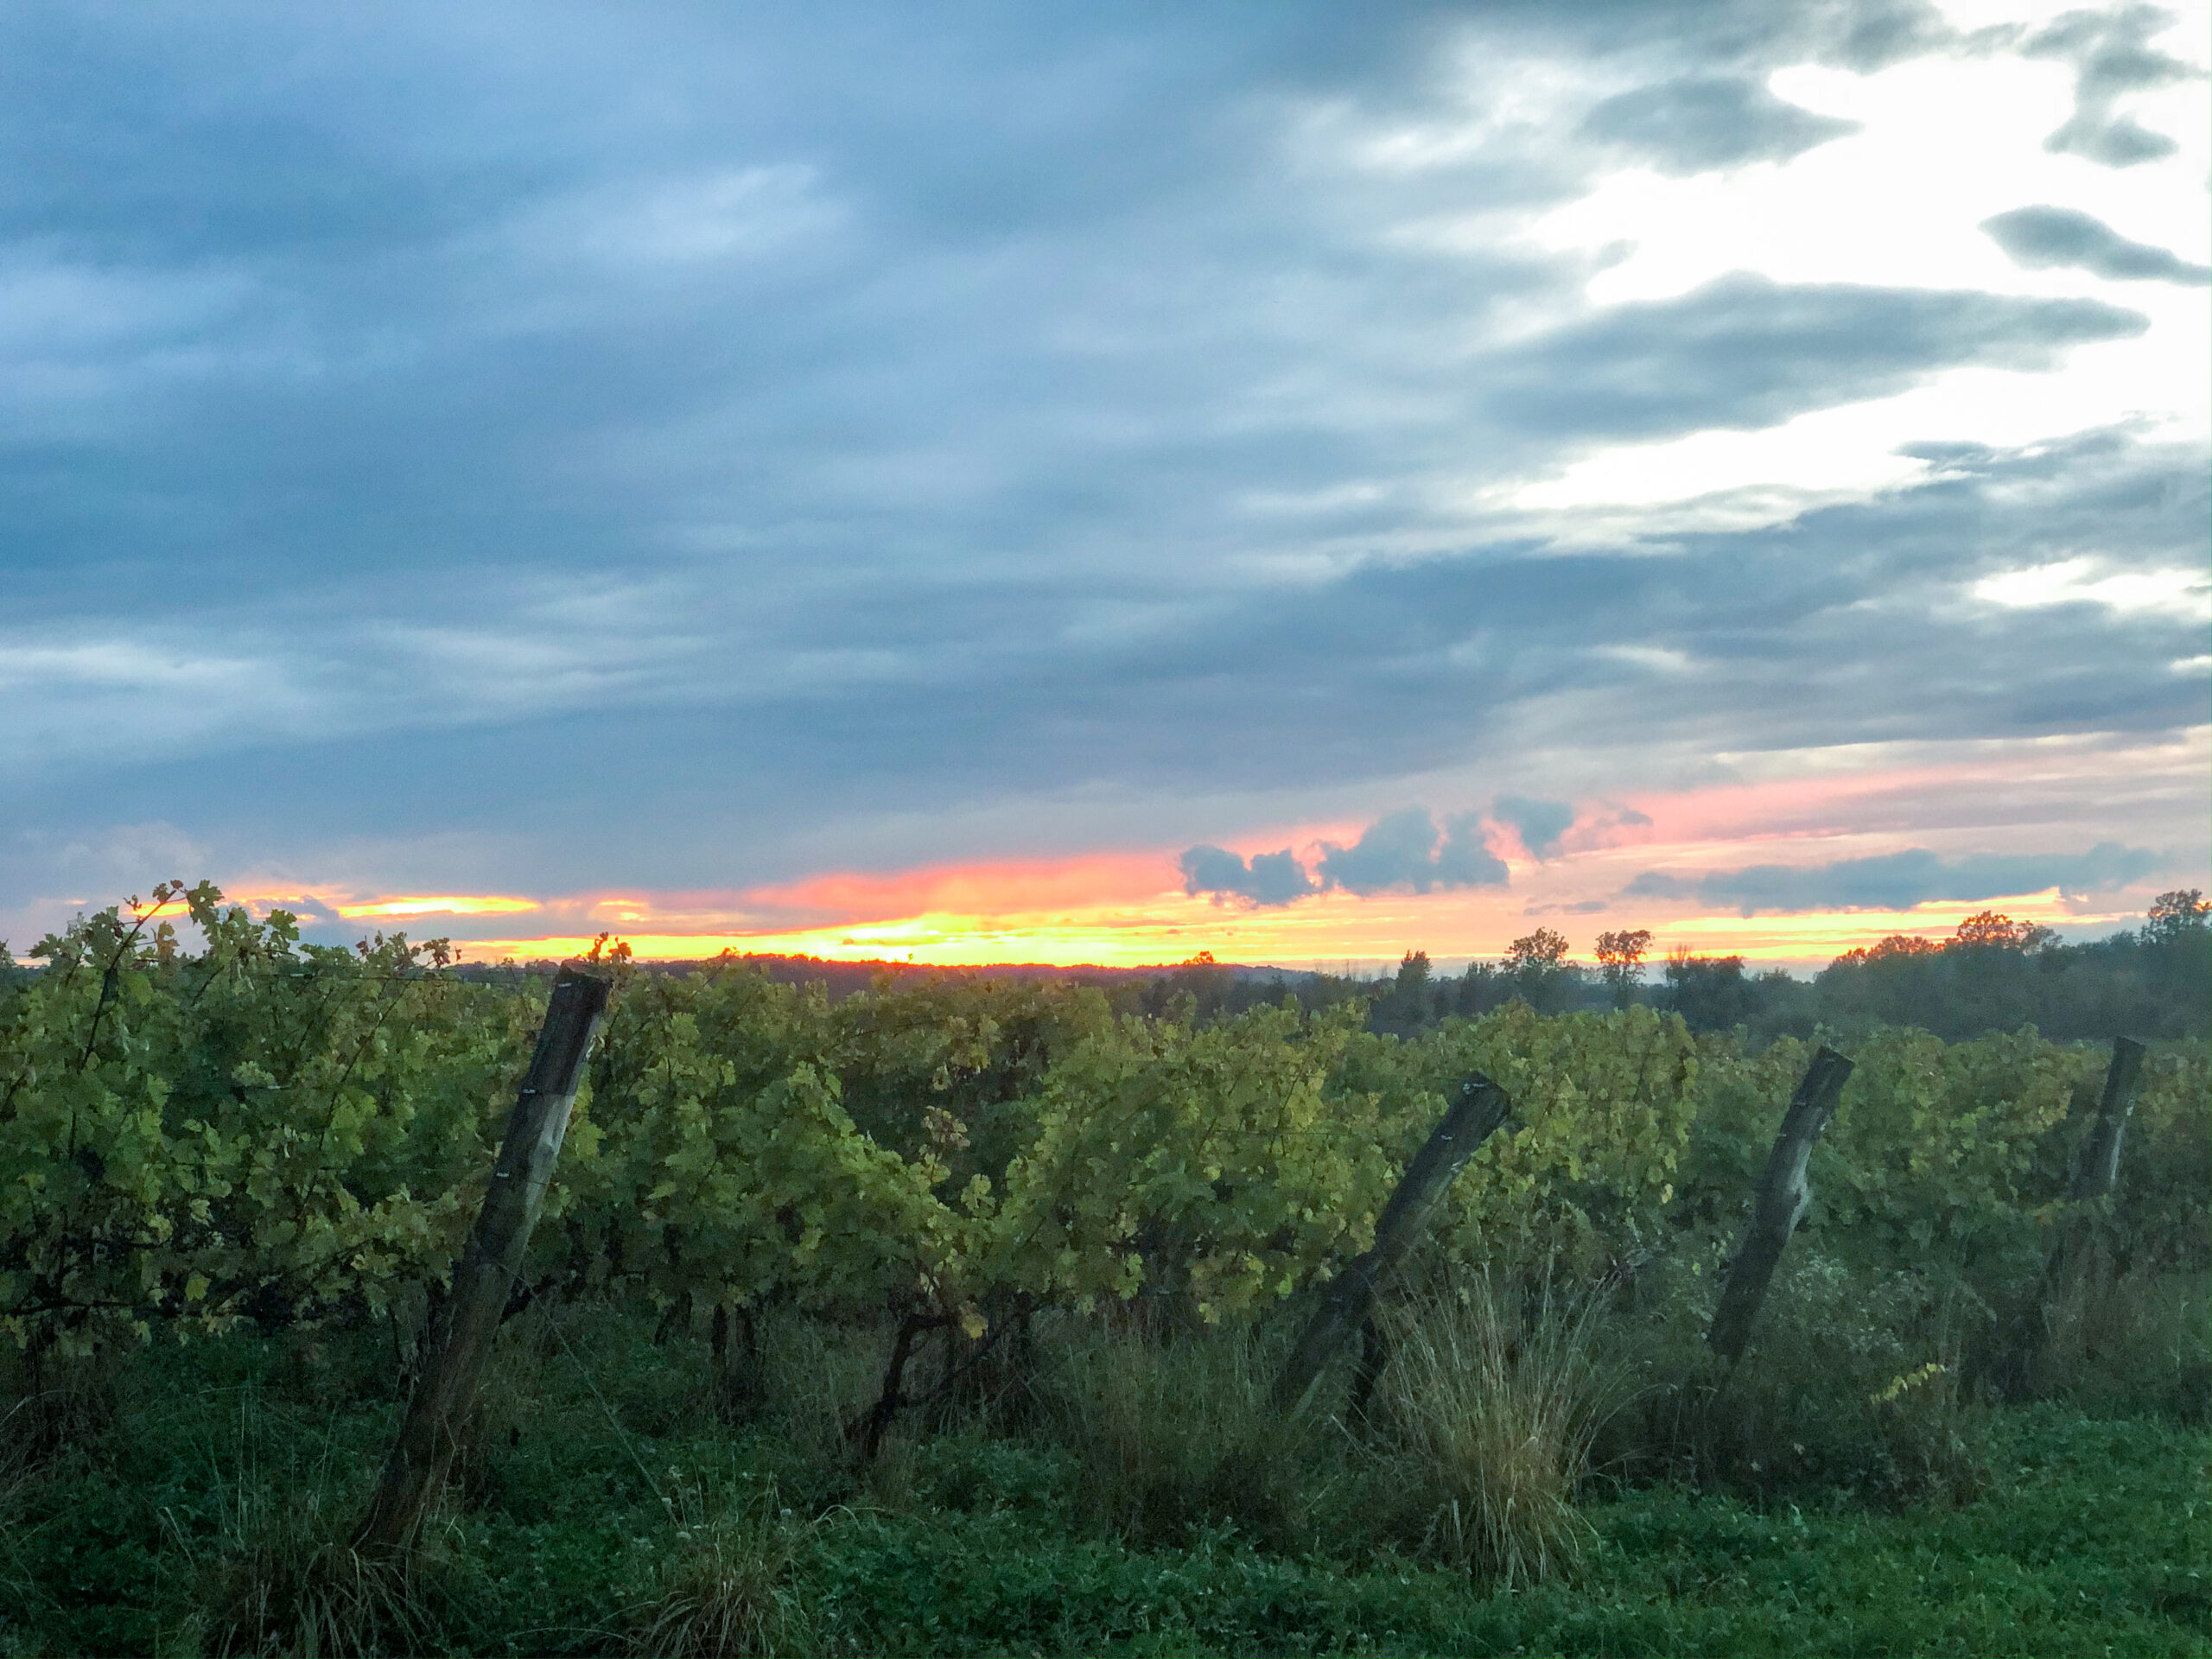 Sunset at Arrowhead Springs Vineyard in Niagara Wine Country on the Niagara Wine Trail